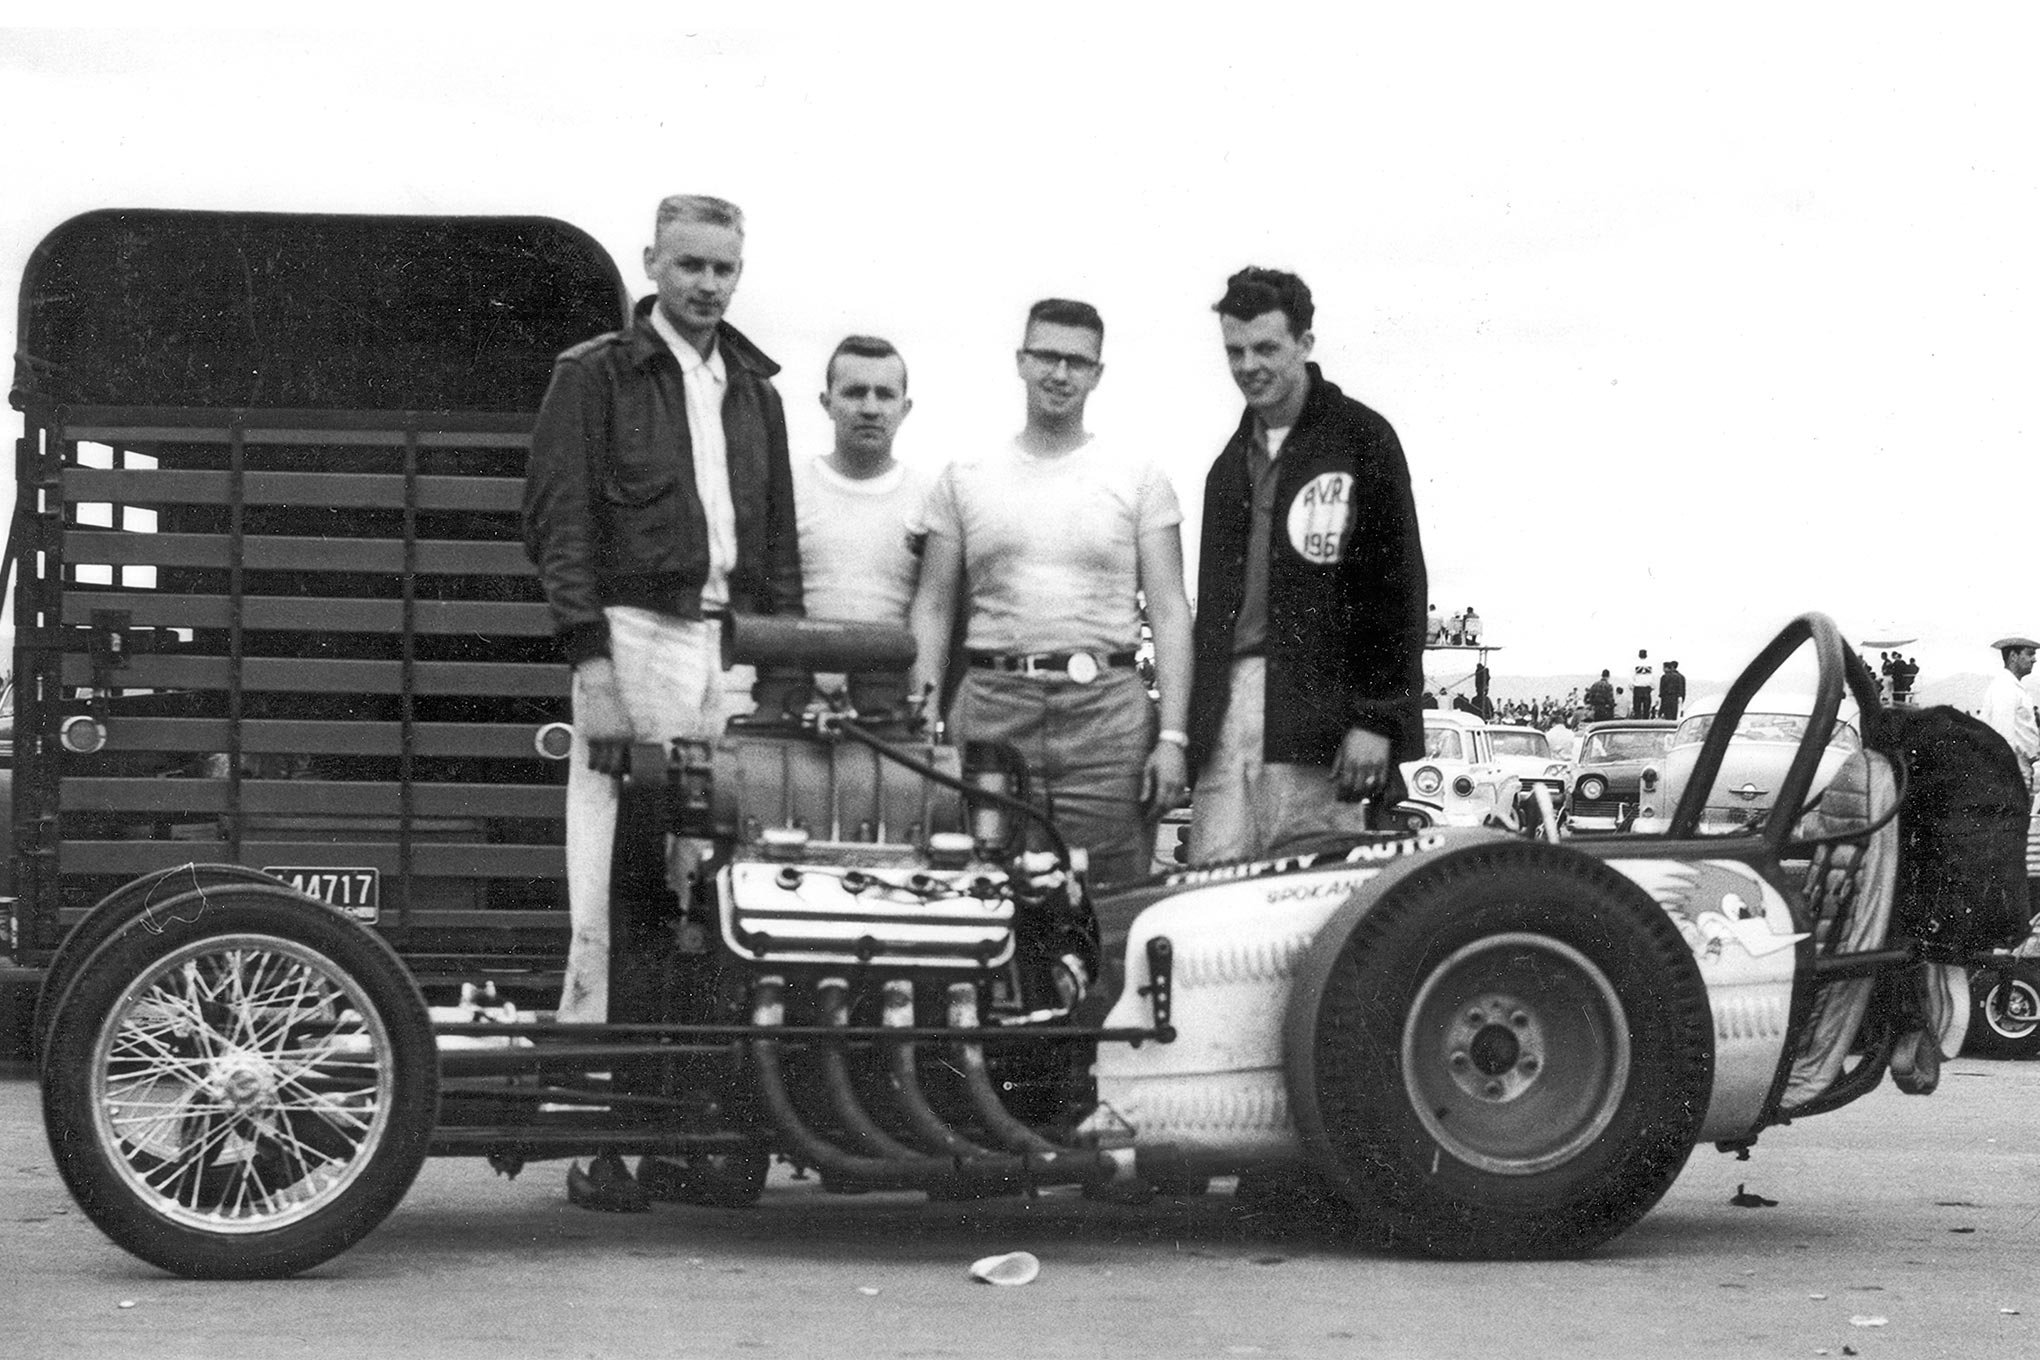 Some speculated that the success of the Thrifty Automotive dragster was due to the car's uncommonly short wheelbase. Though unintentional, it served the ultimate foil for a hidden port-injected nitrous system. From left to right are driver Don Stortroen, crewmember Laurie Moreau, engine builder Dick Flynn, and crewmember Lew Shaw at the fabled 1961 March Meet.